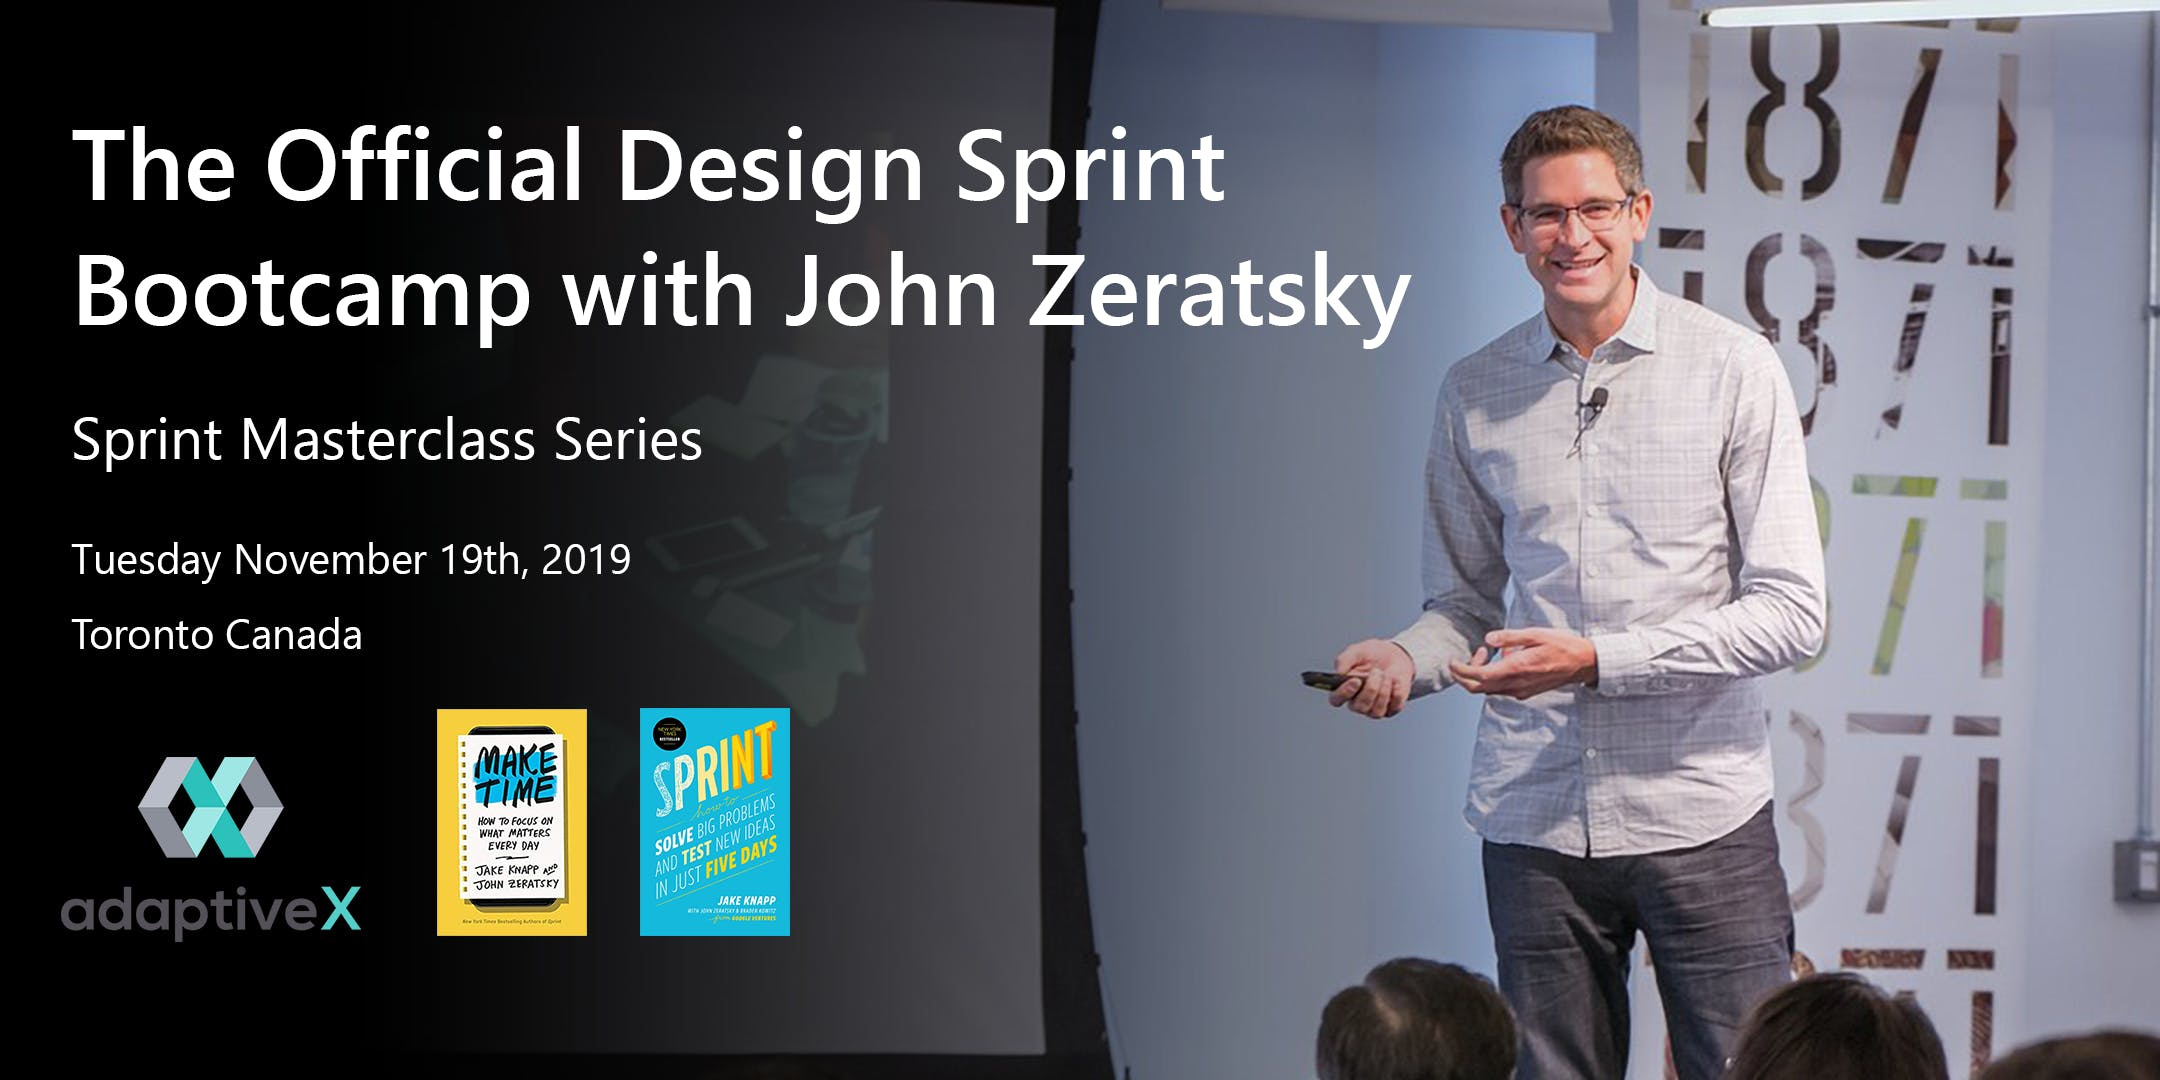 Official Design Sprint Bootcamp with John Zeratsky and AdaptiveX